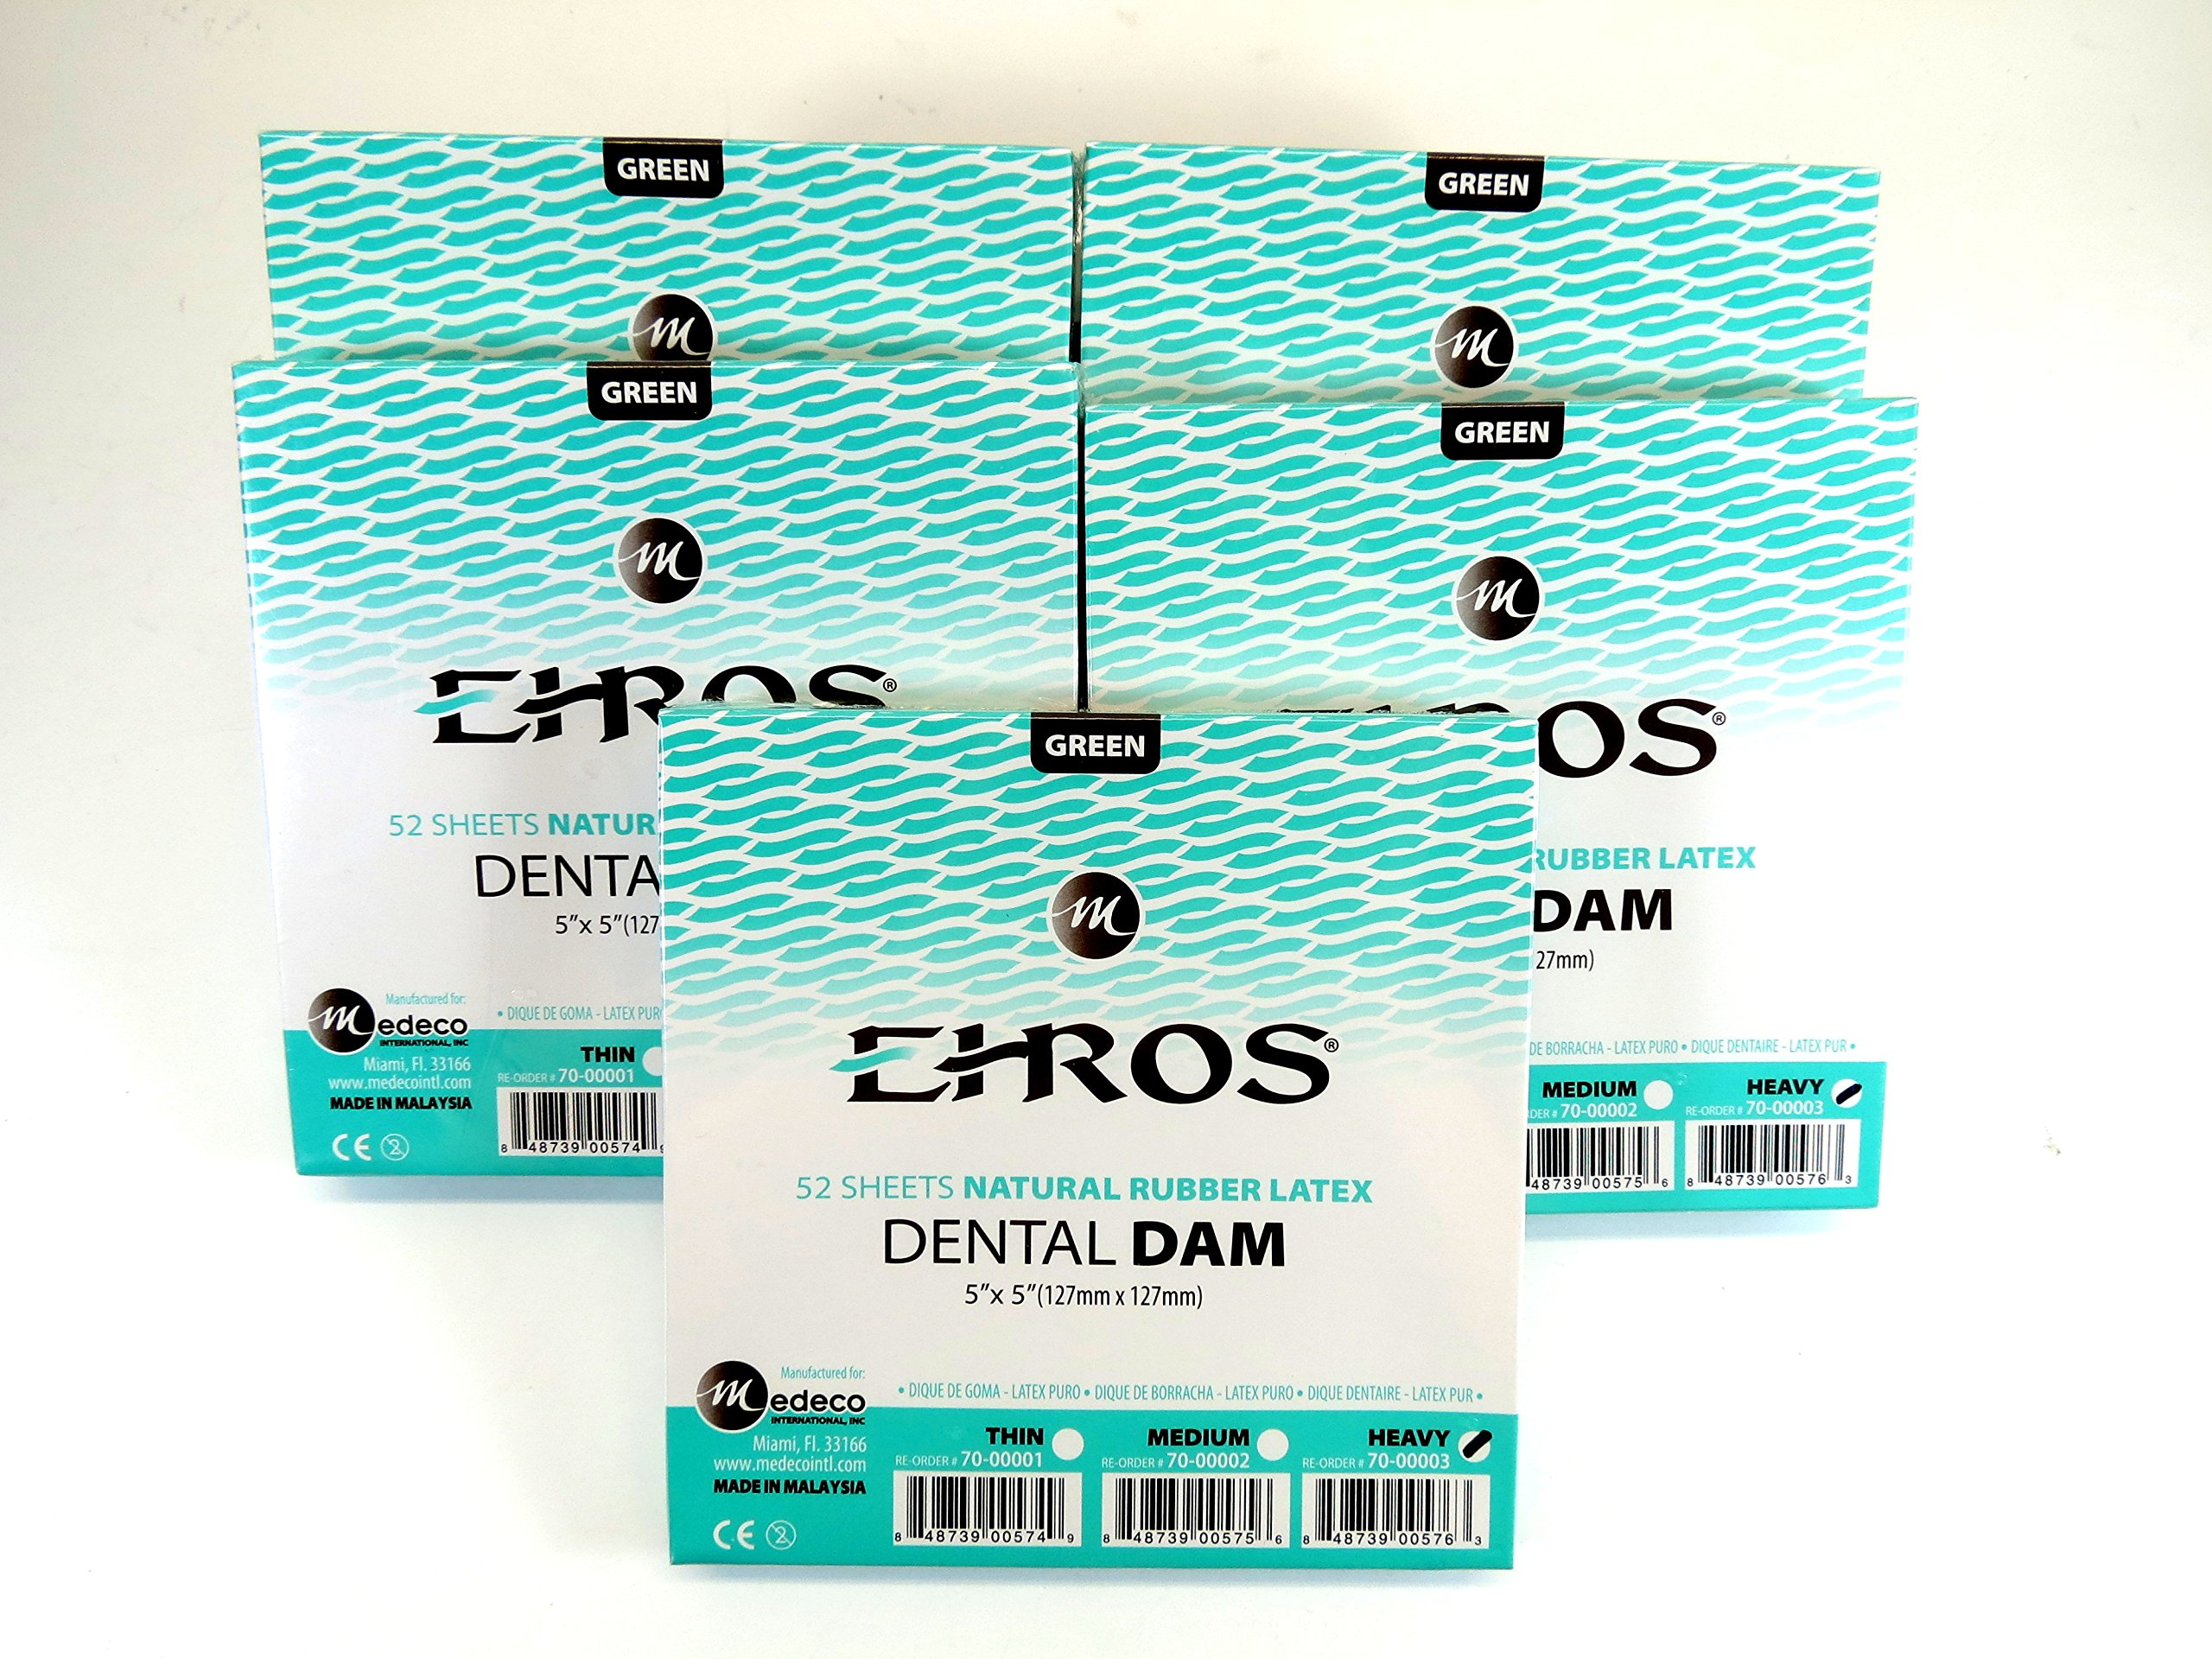 Rubber Dental Dam 5''x 5'' Heavy Green Kit / 5 Box Latex 52 Sheets Dique De Goma Natural EHROS